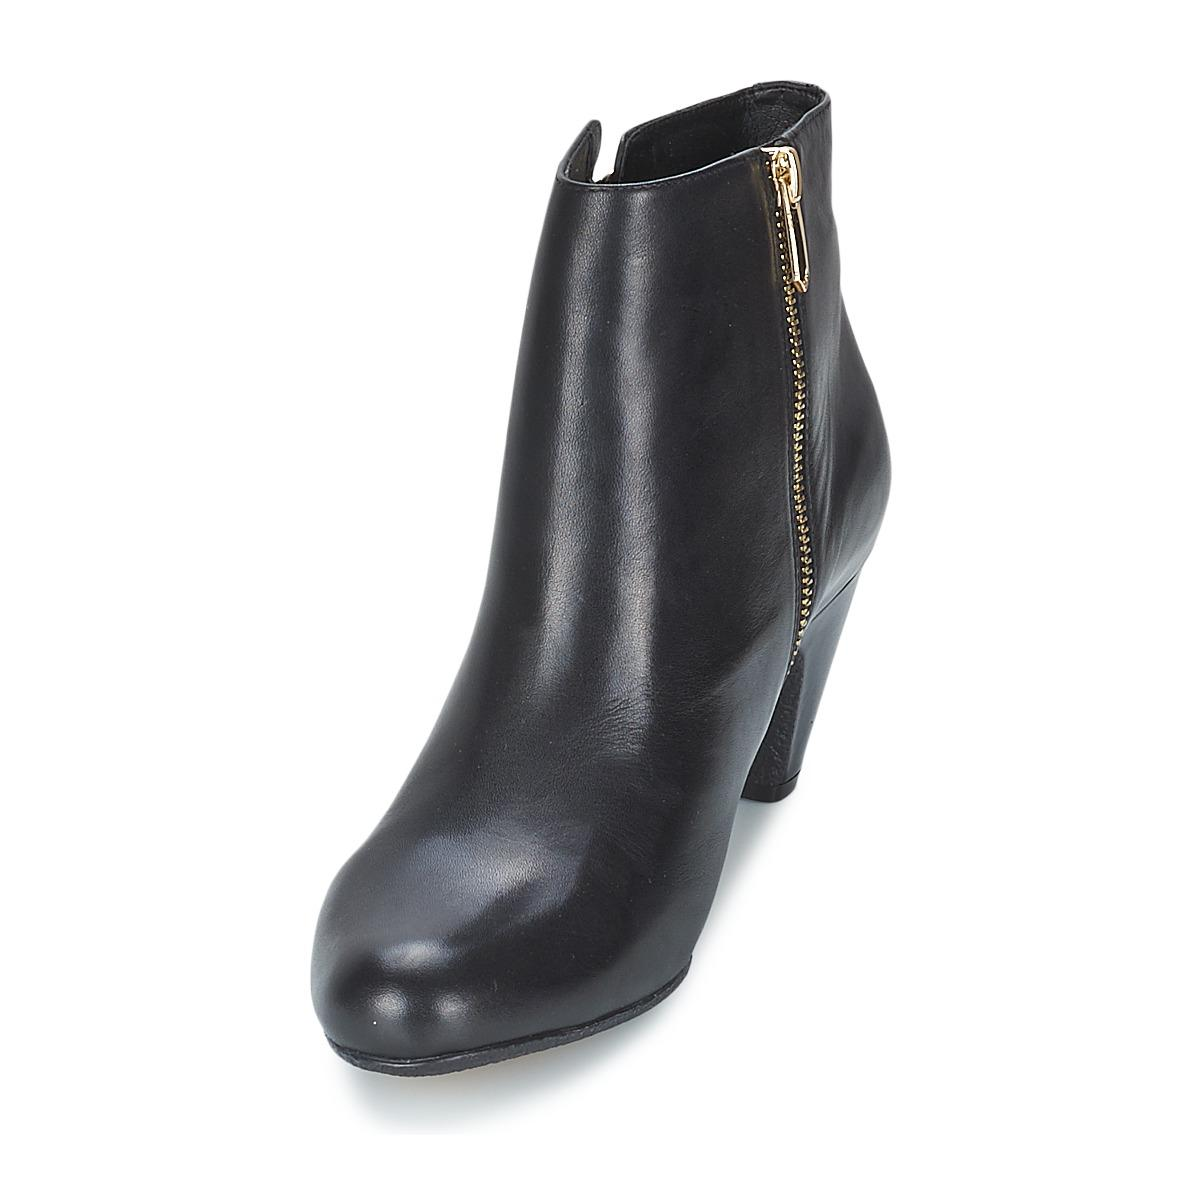 a8415d90f03d72 Sam Edelman Marmont Women s Low Ankle Boots In Black in Black - Lyst